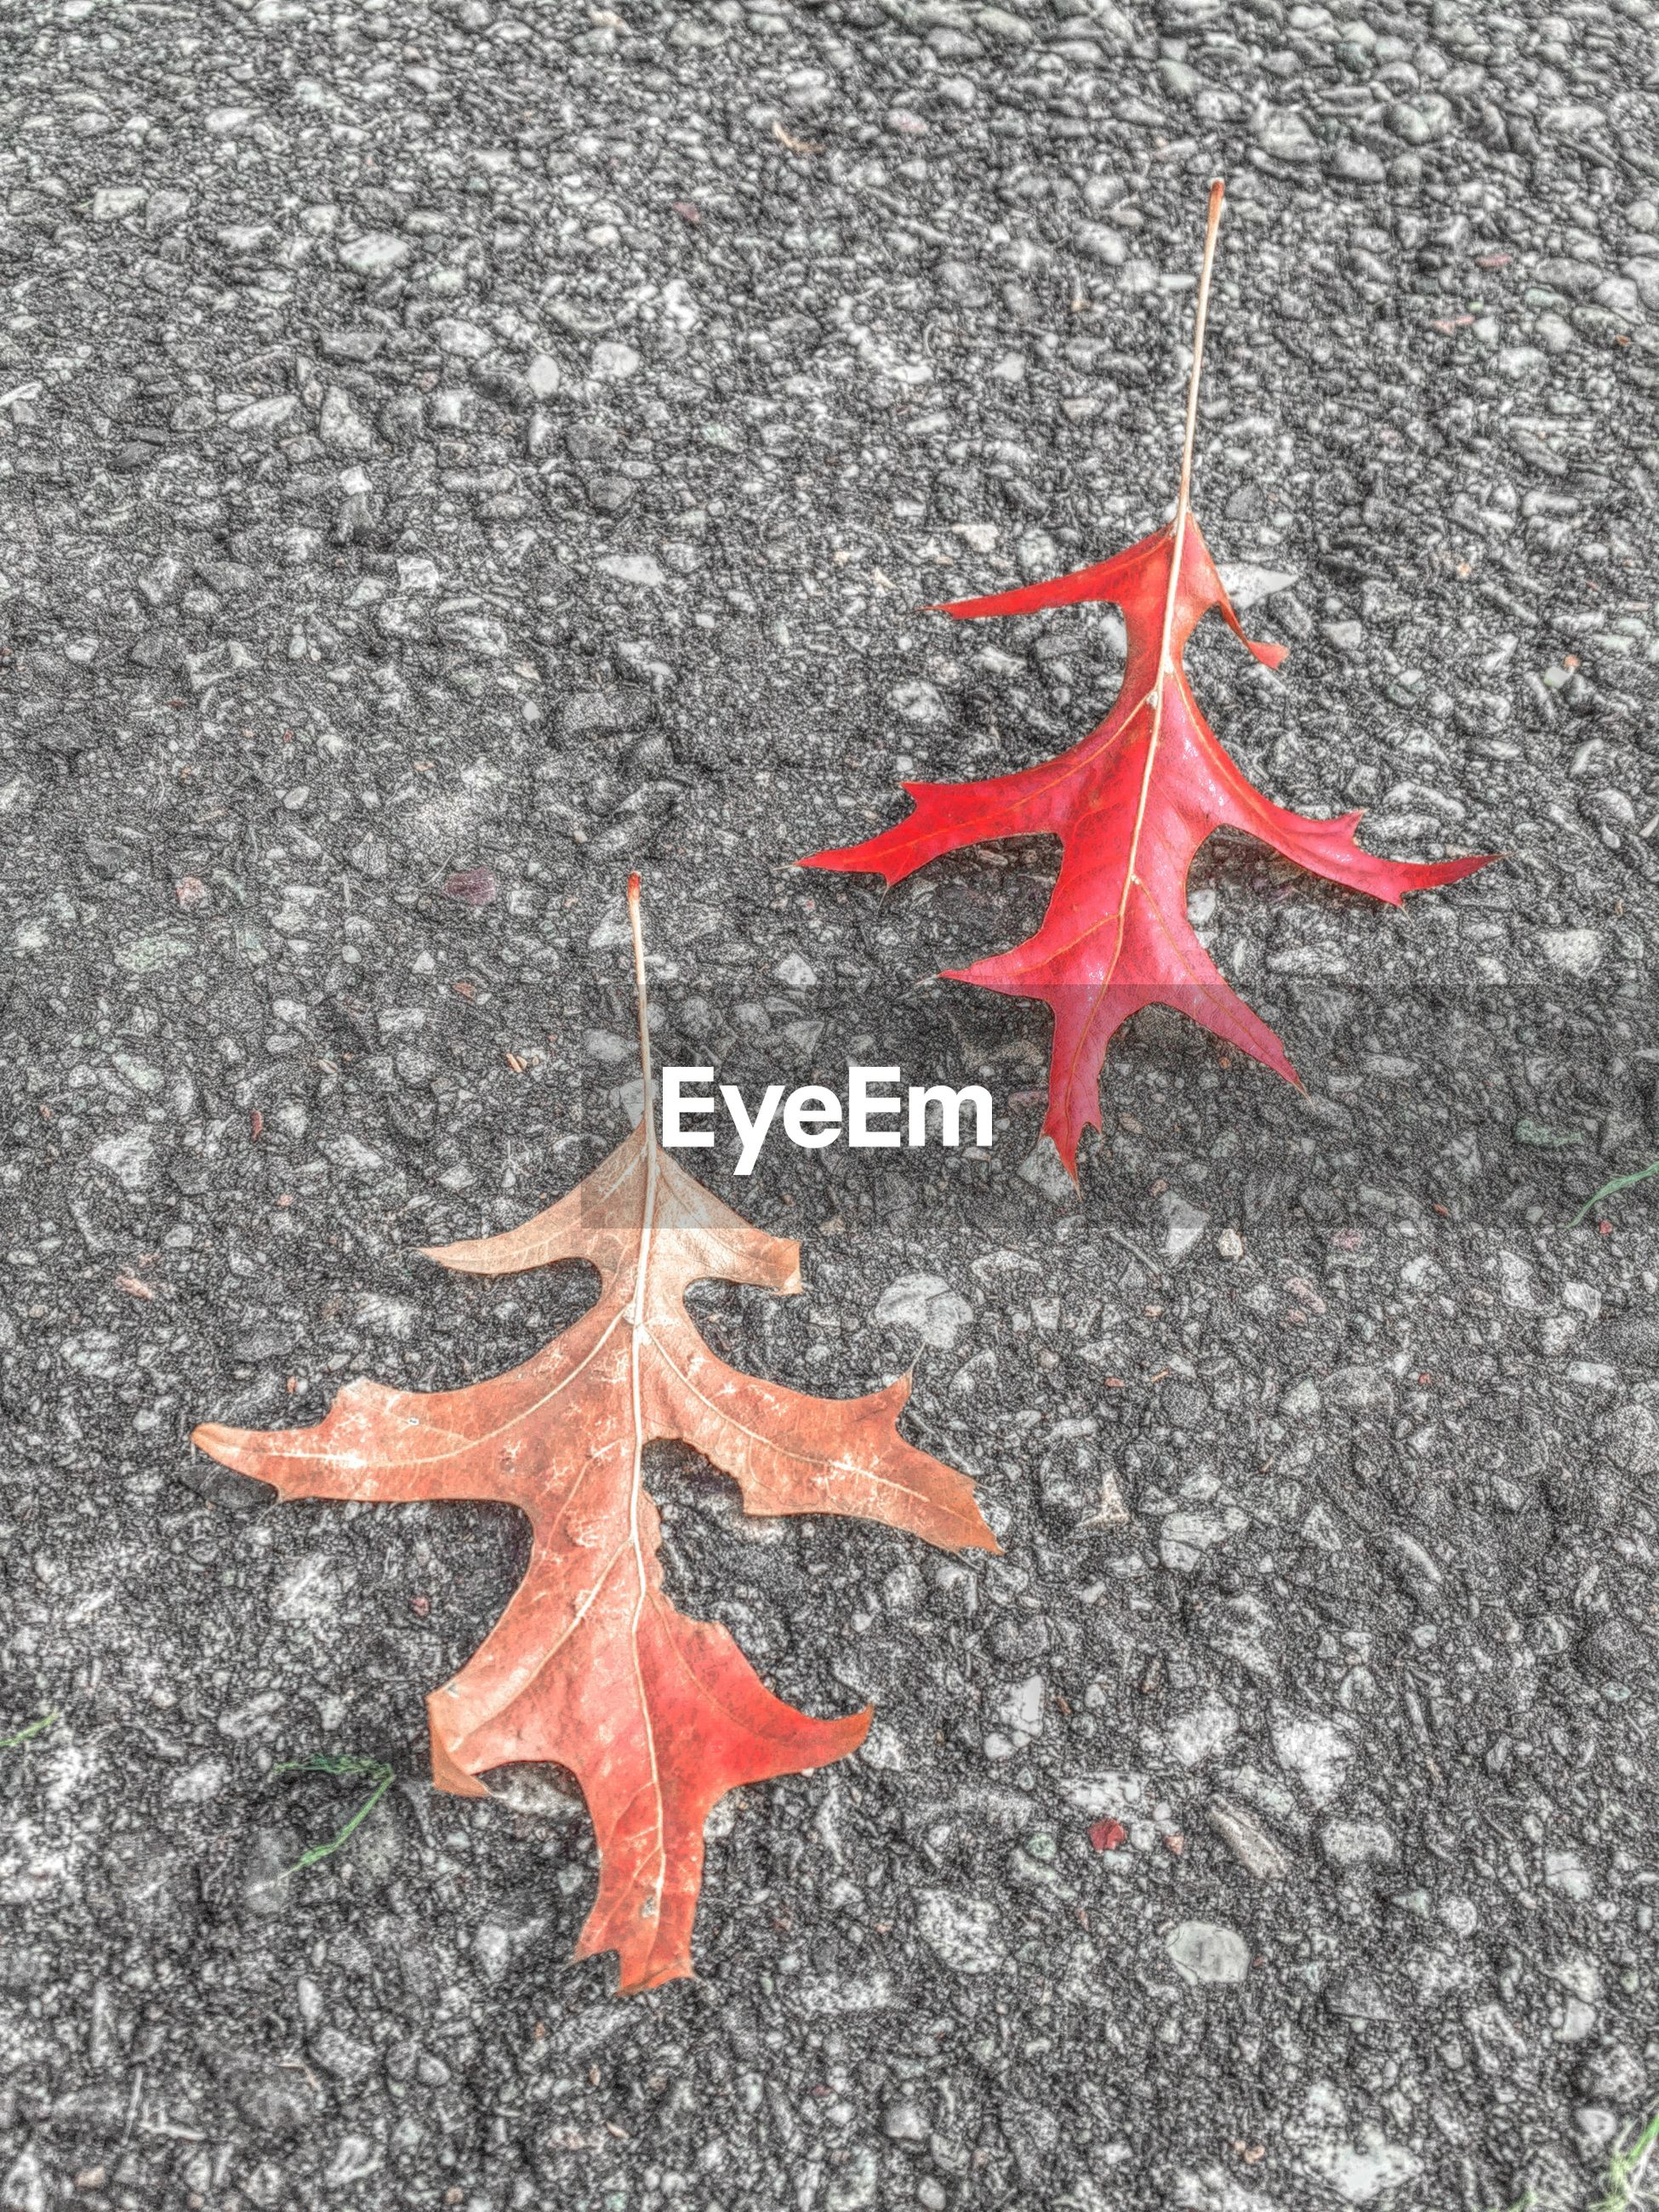 red, high angle view, close-up, autumn, change, leaf, nature, day, orange color, maple leaf, outdoors, asphalt, no people, street, fragility, season, directly above, natural pattern, star shape, dry